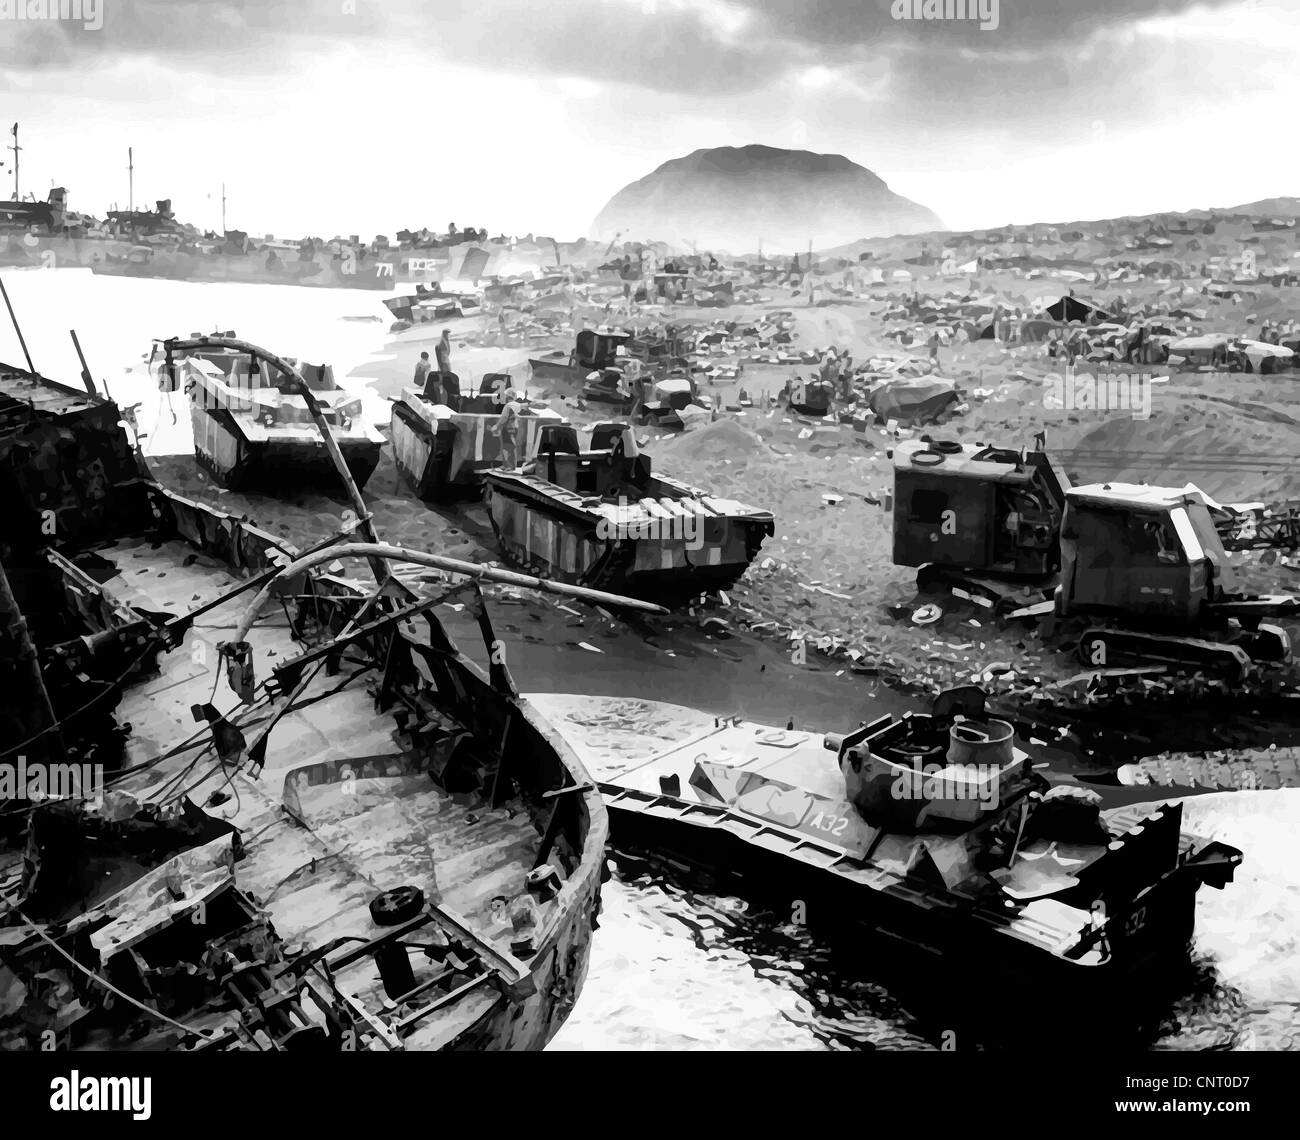 Digitally restored vector photo of the devastated wreckage on the beach during The Battle of Iwo Jima. - Stock Image